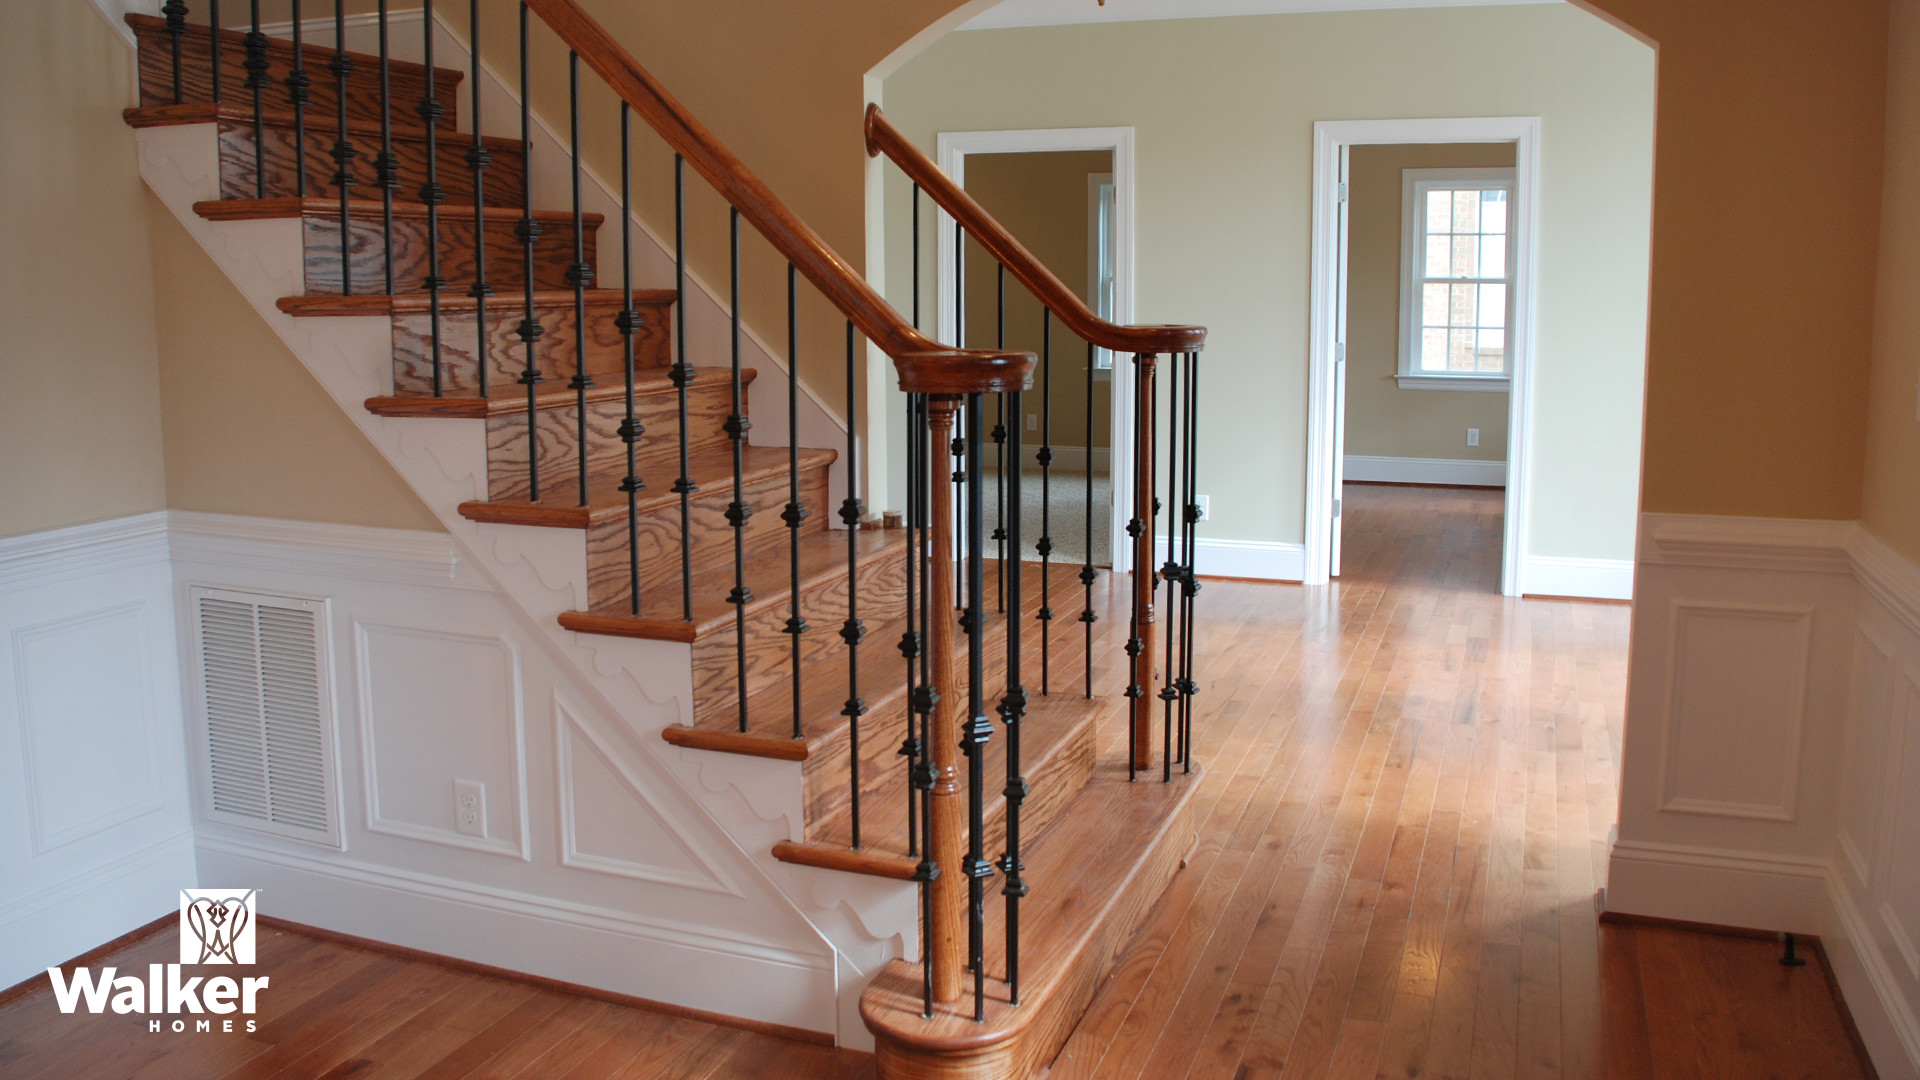 A Foyer and staircase from a custom home design by Walker Homes in Glen Allen, Virginia